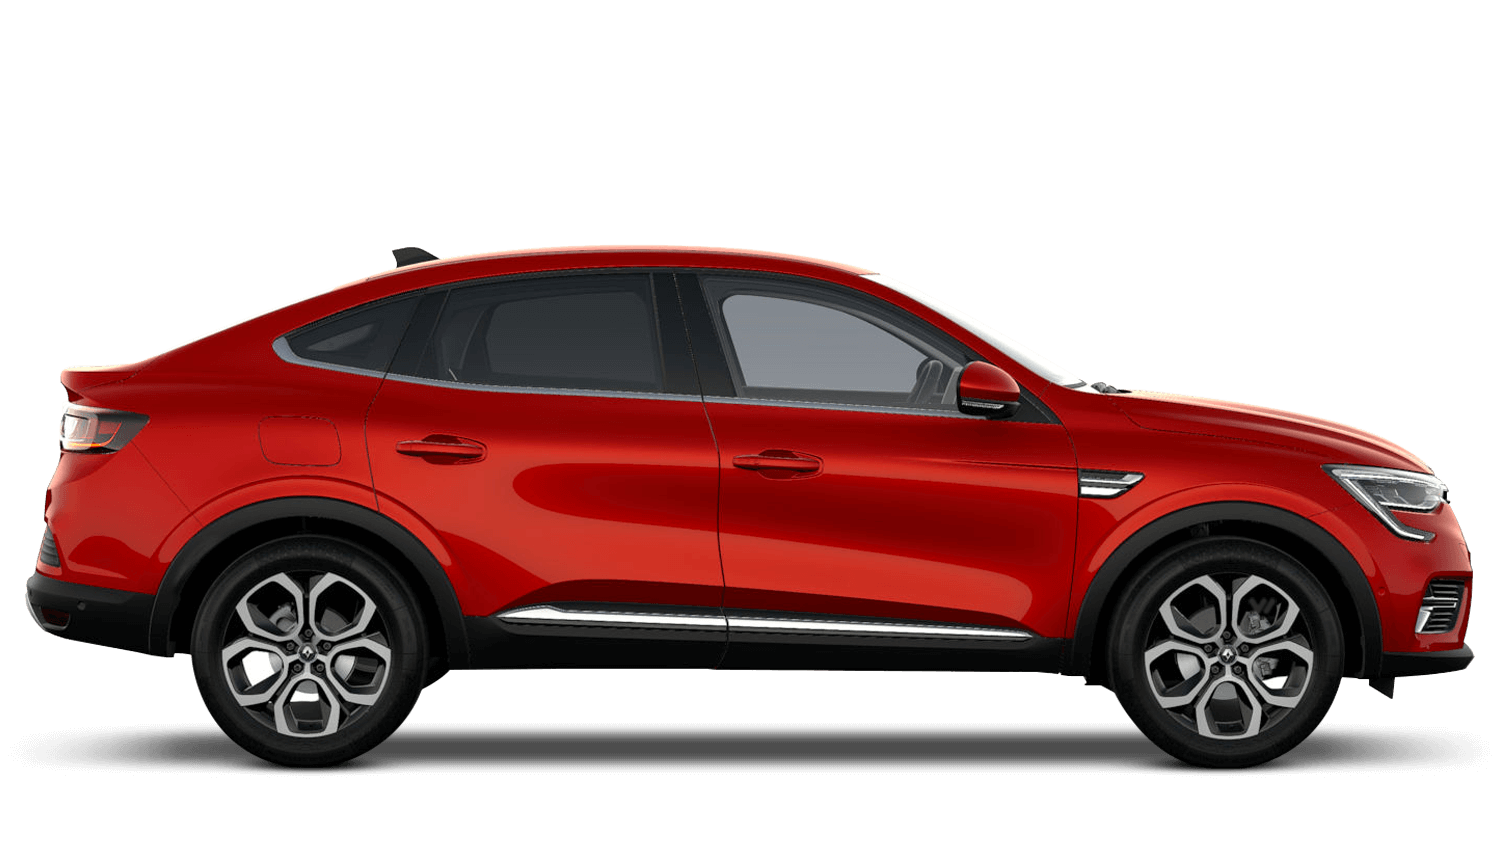 Flame Red All-New Renault Arkana